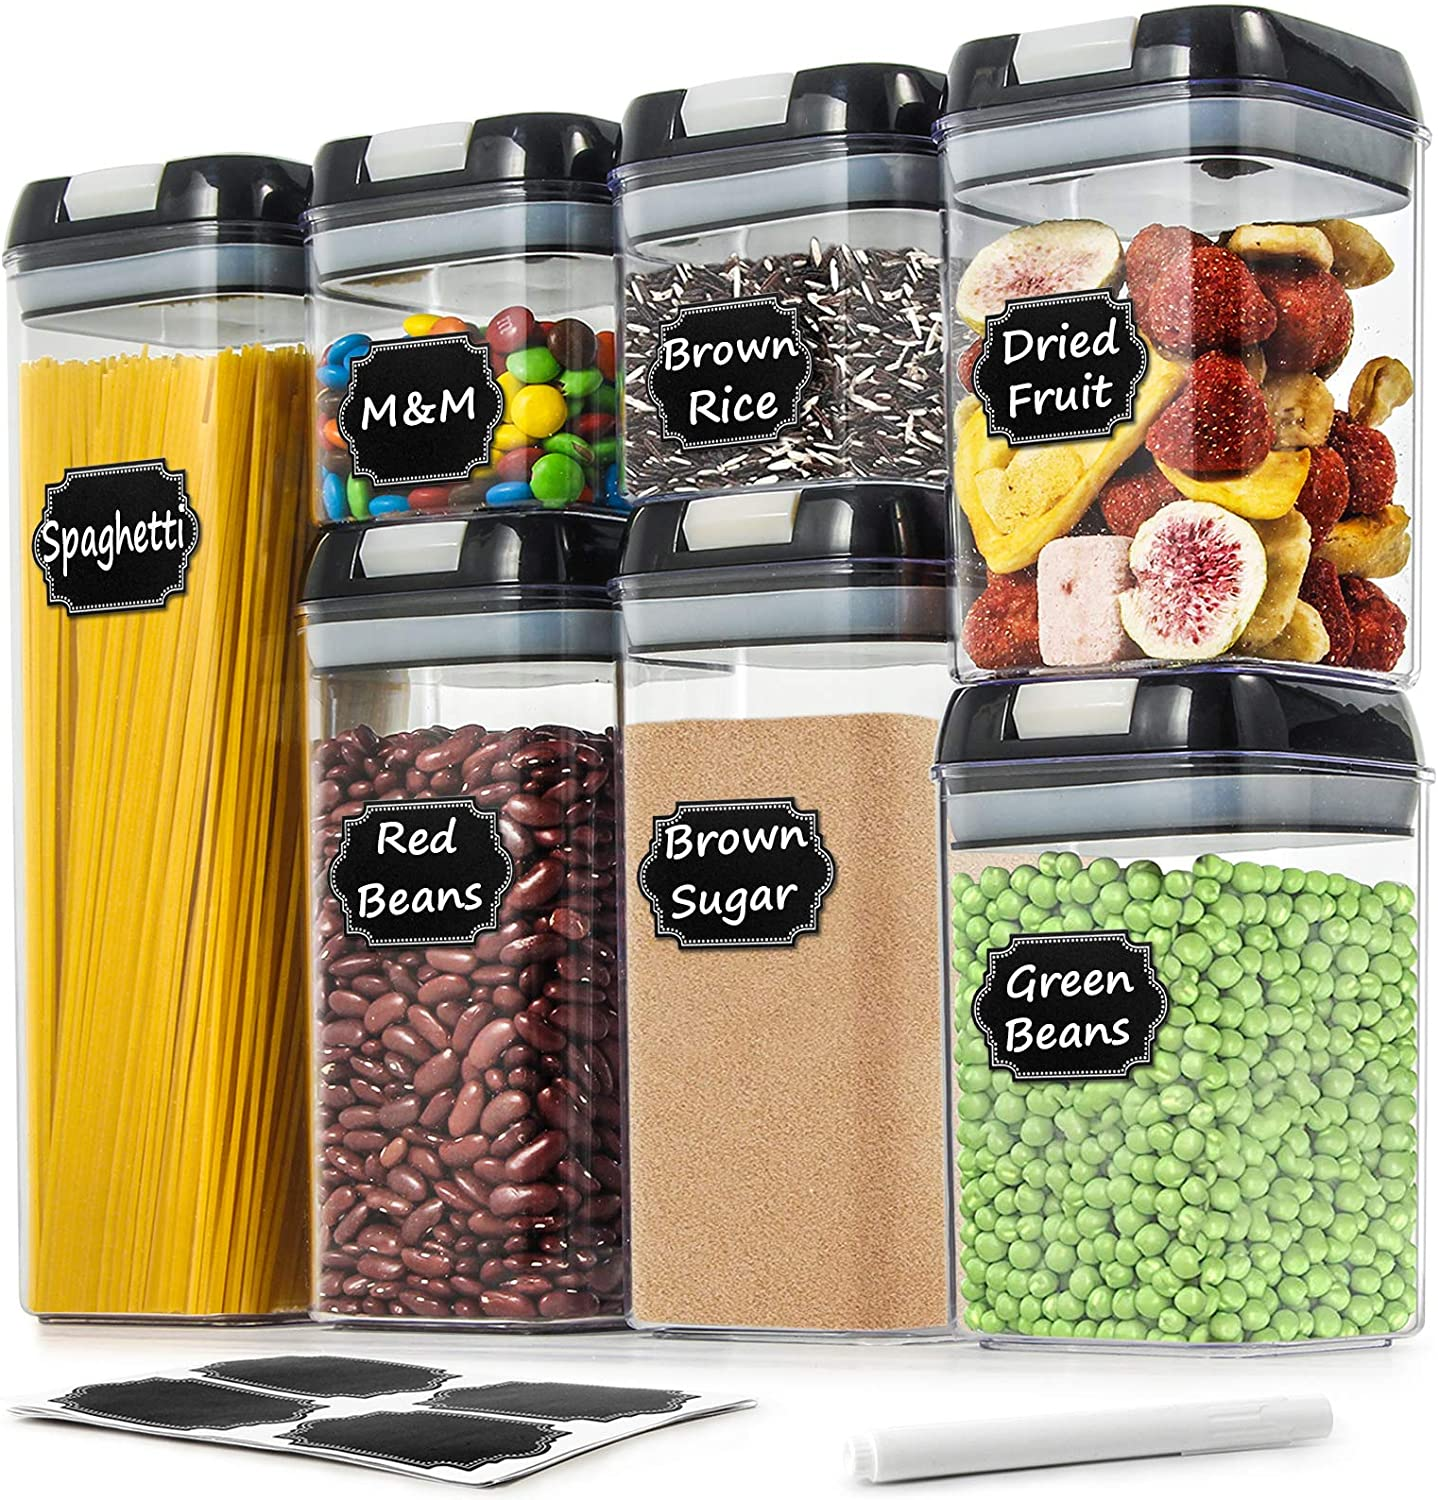 Airtight Food Storage Containers - Wildone Cereal & Dry Food Storage Containers Set of 7 with Easy Locking Lids, for Kitchen Pantry Organization and Storage, Include 20 Labels & 1 Marker